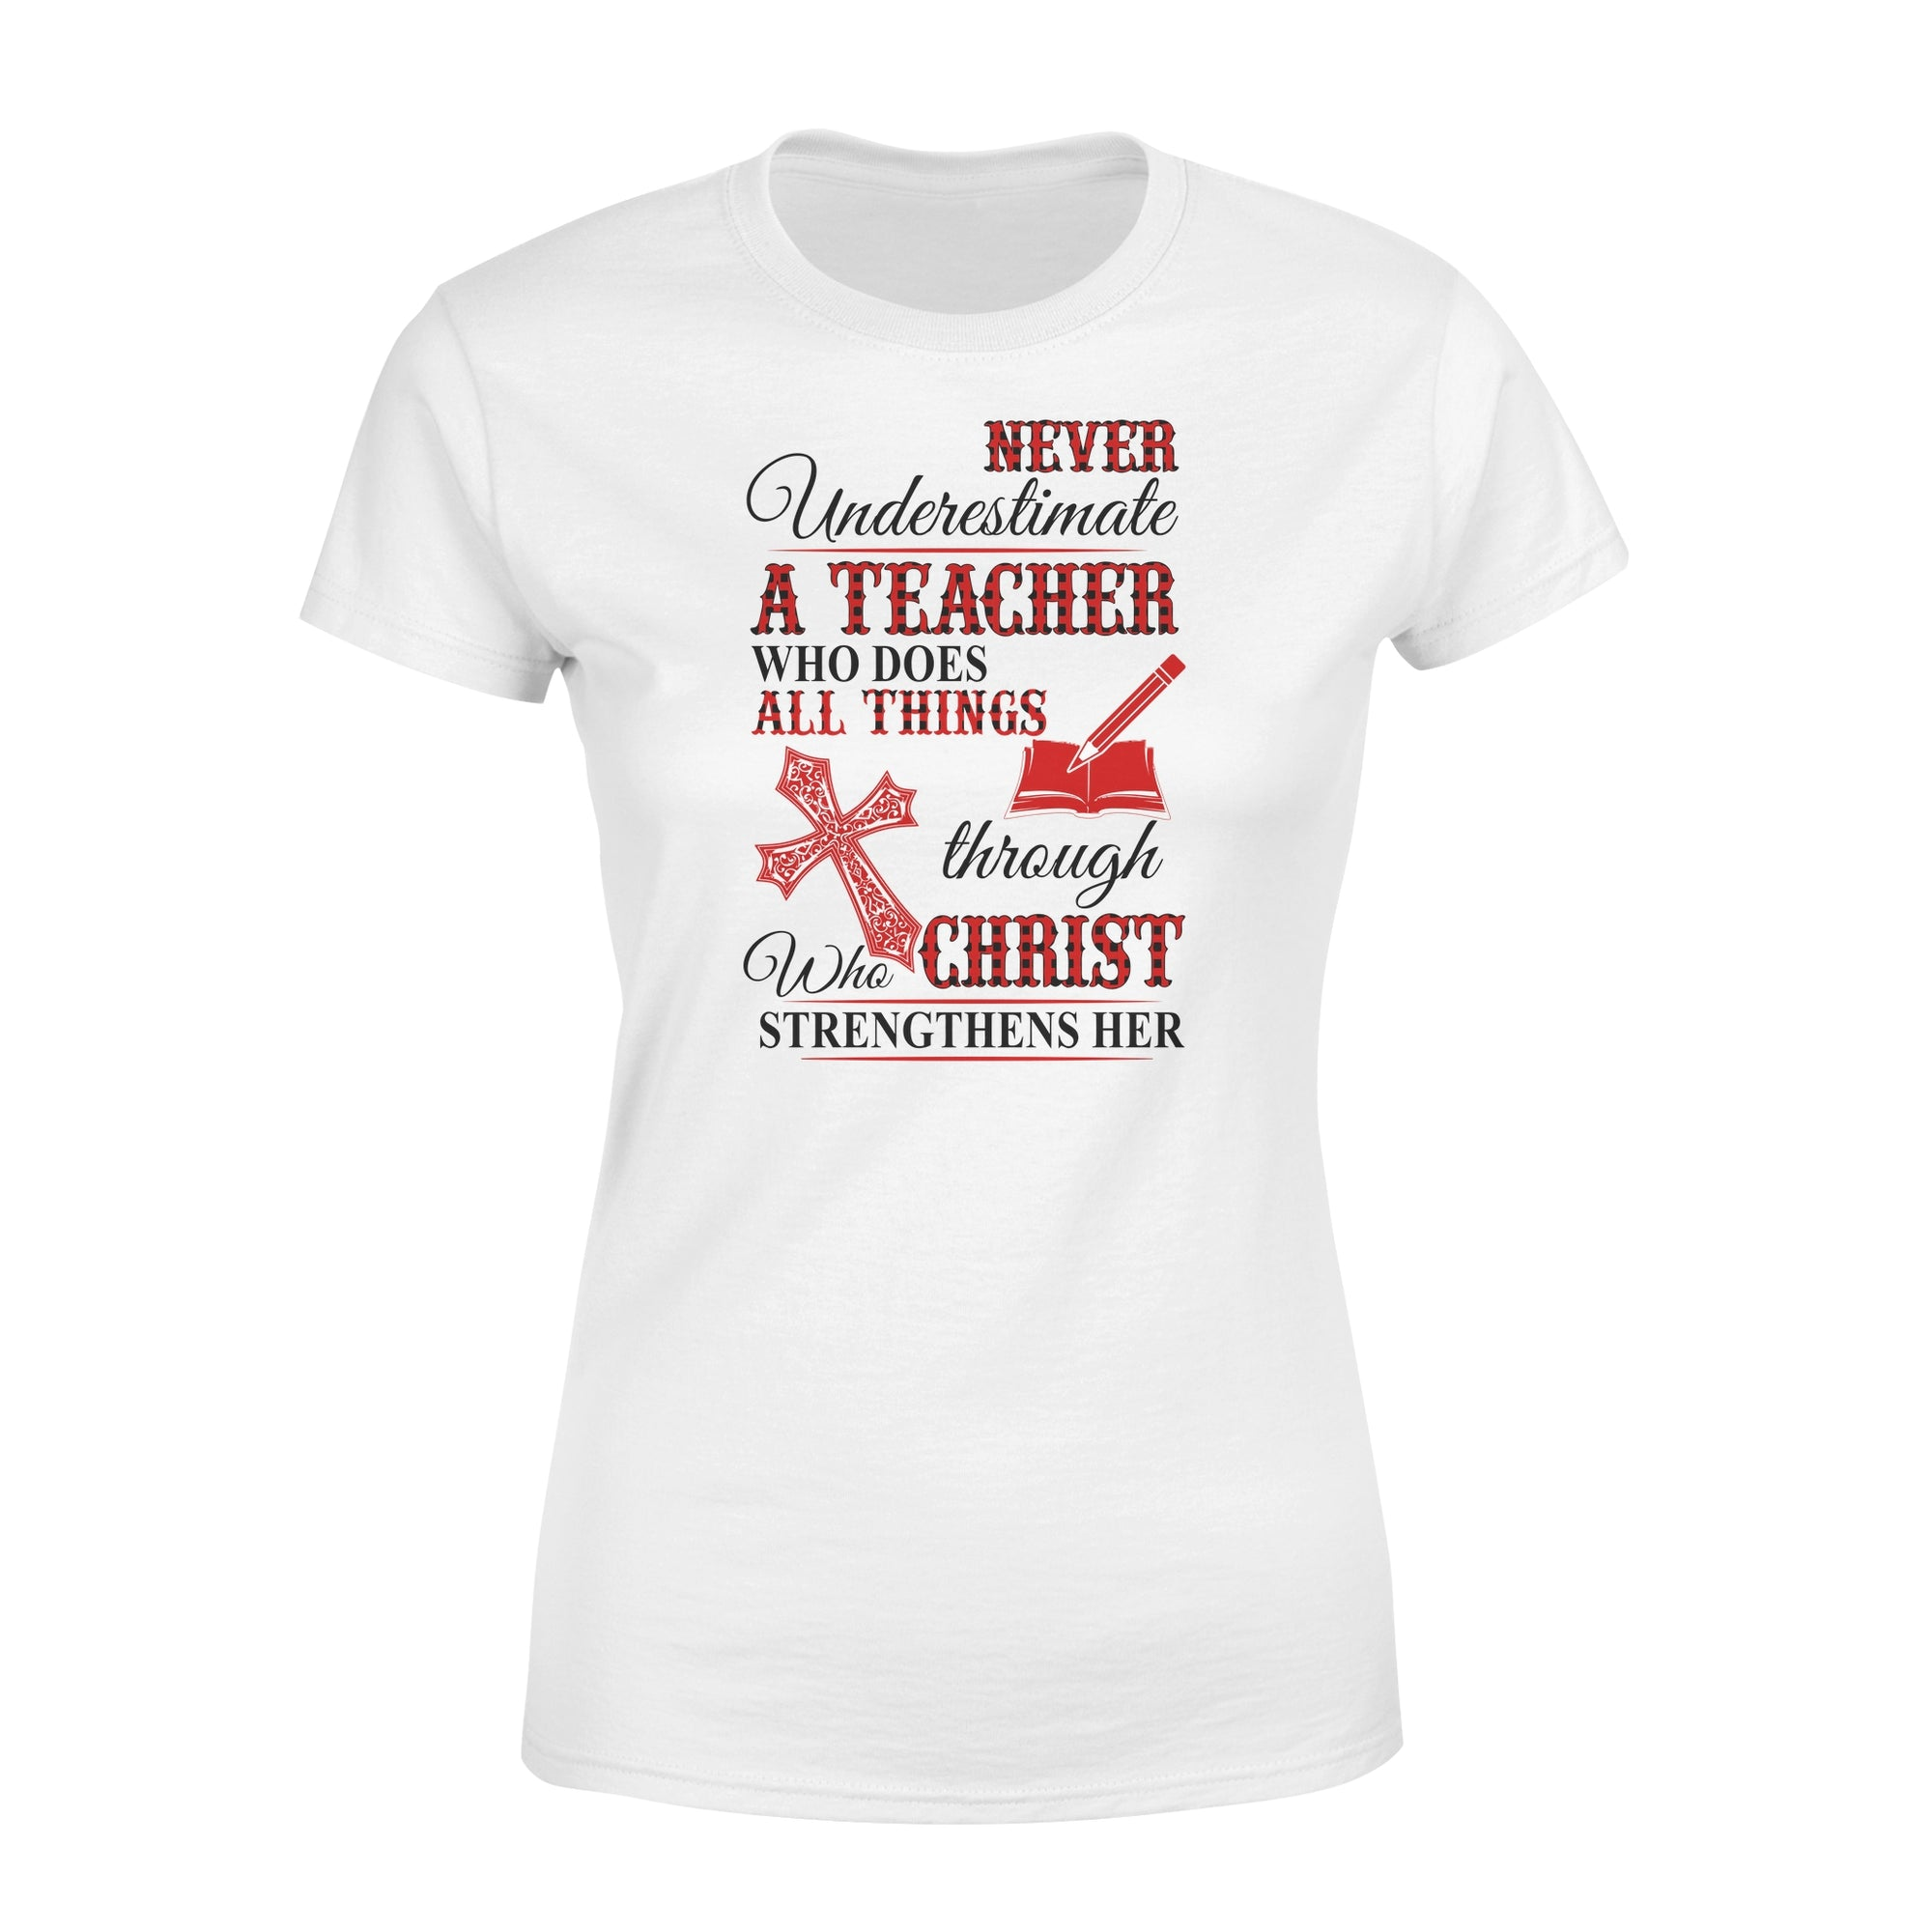 VIRA Premium Women's Tee For Jesus Lovers & Awesome Teachers